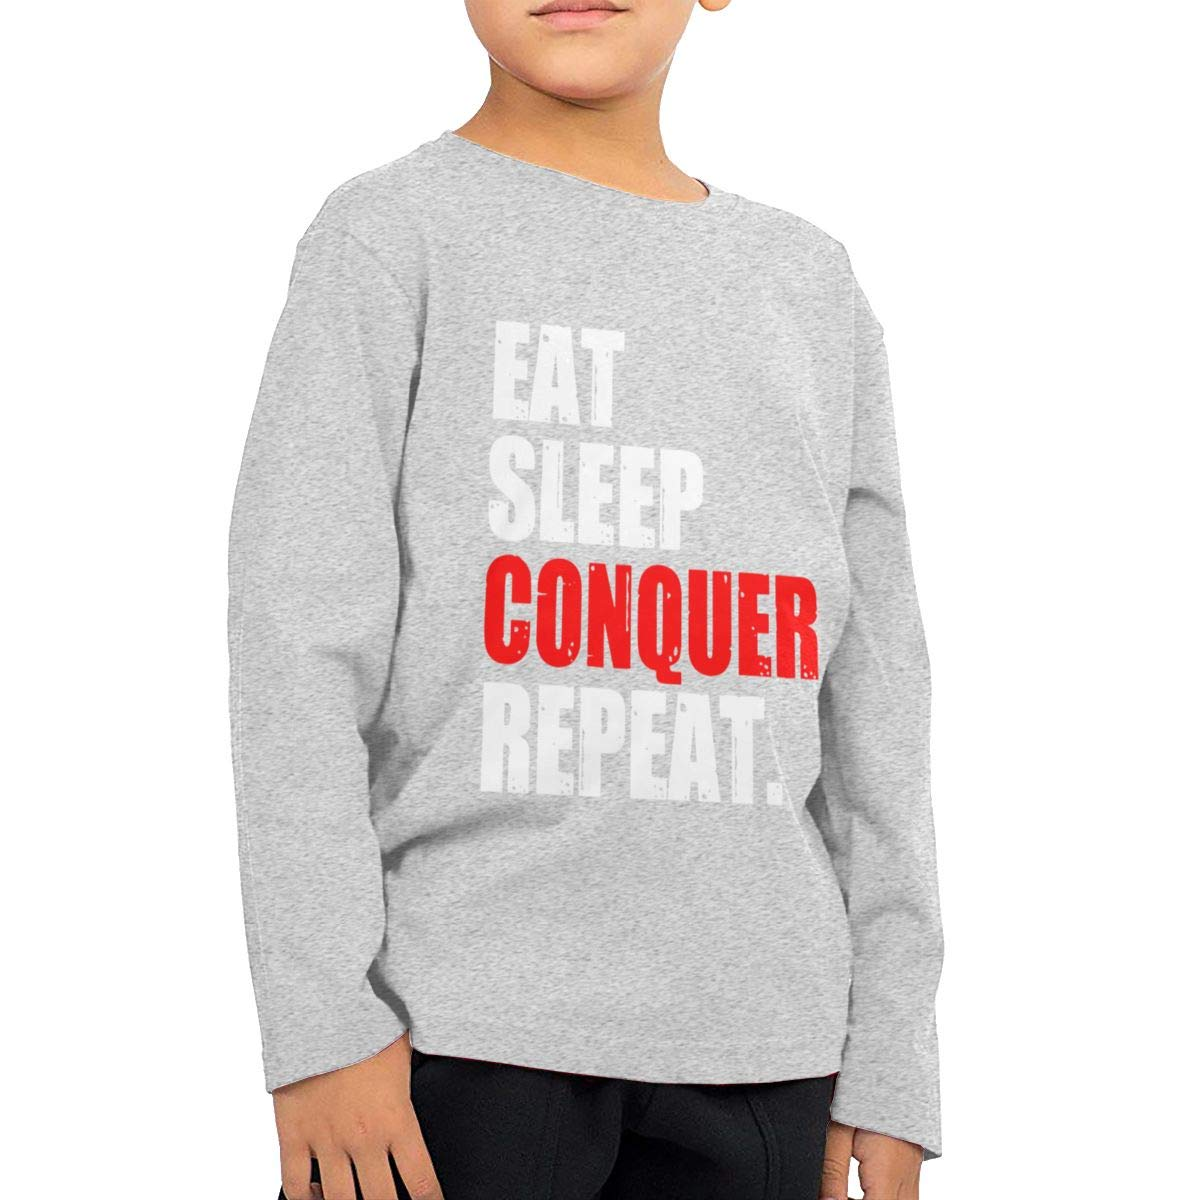 Eat Sleep Conquer Repeat Youth Boys Long Sleeve T-Shirt Cotton